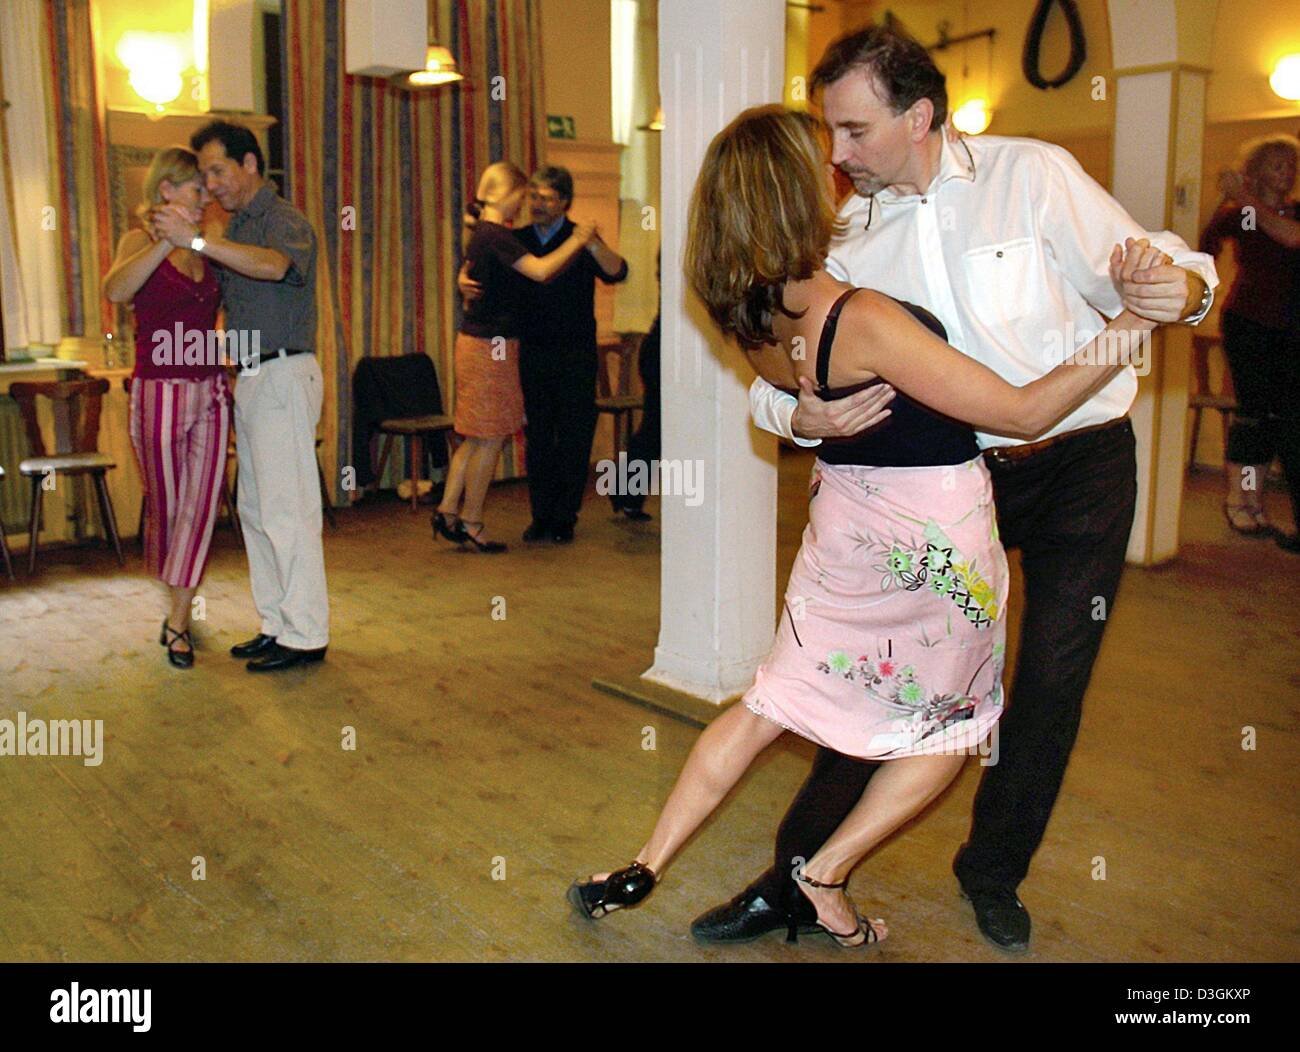 Tango Argentino Stock Photos Images Alamy Dance Steps Diagram Dpa Instructor Peter Ellenbogen R Demostrates A Dancing Step